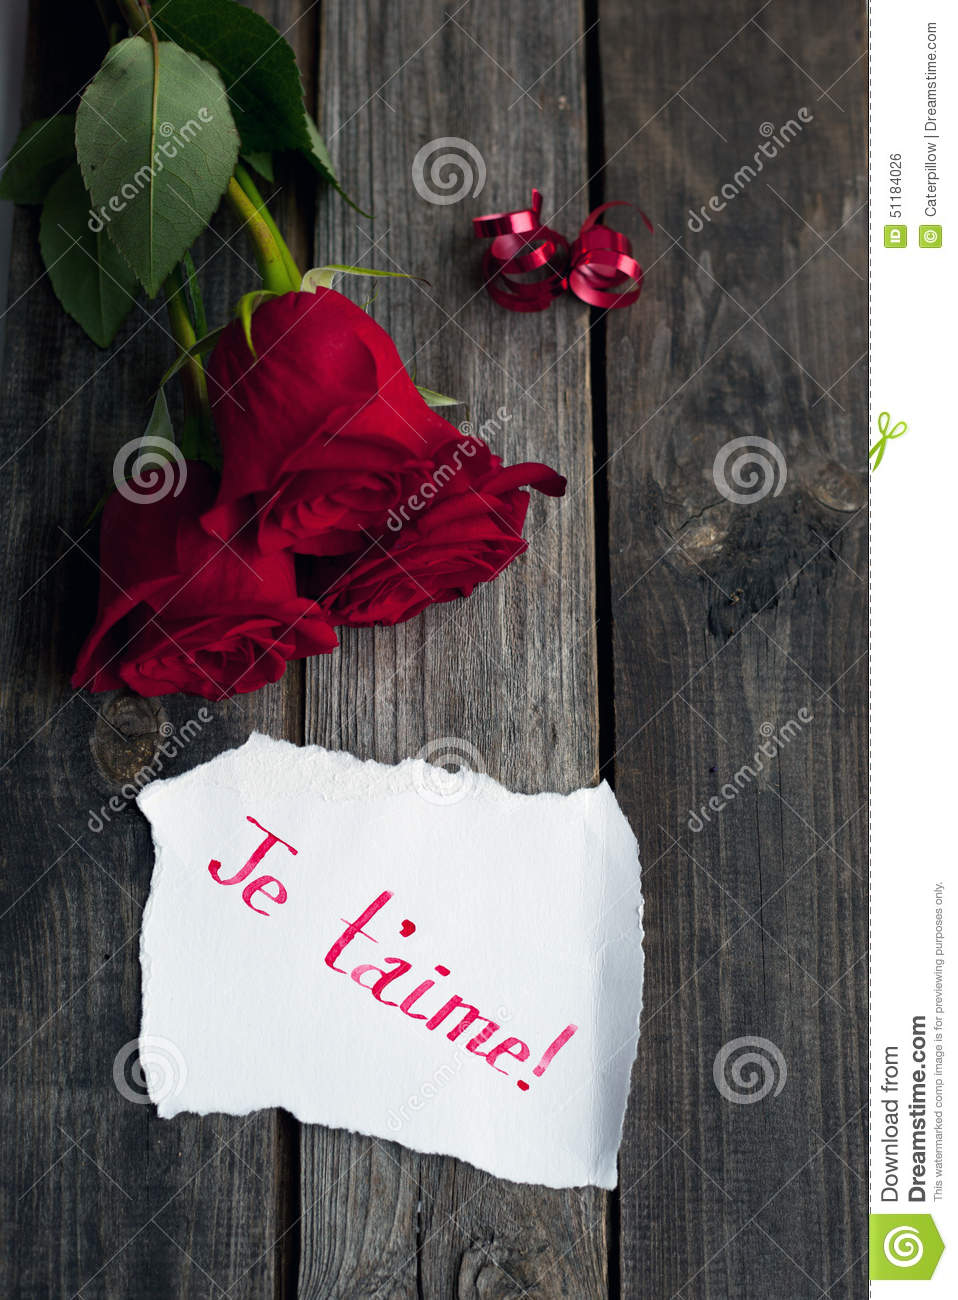 Three Red Roses On Rustic Table With Handwritten Words Je T Aime